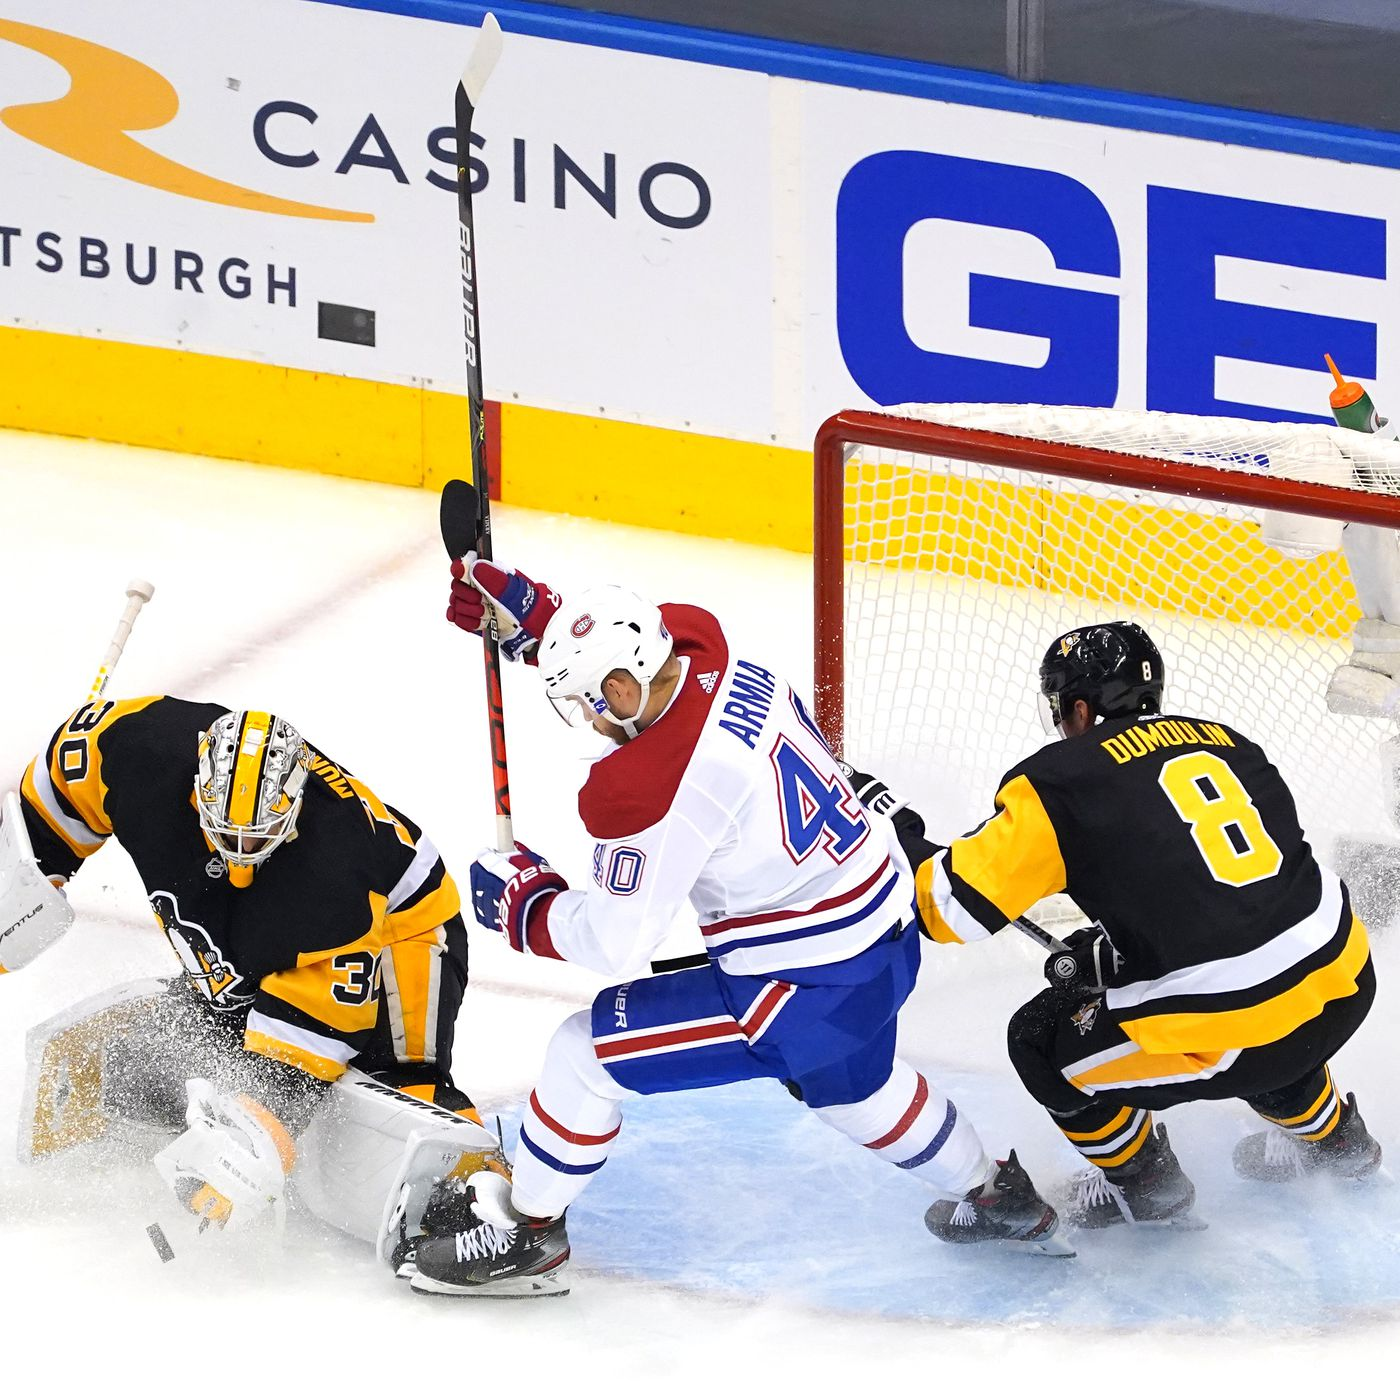 Canadiens Penguins Qualifier Game 2 Start Time And How To Watch Eyes On The Prize